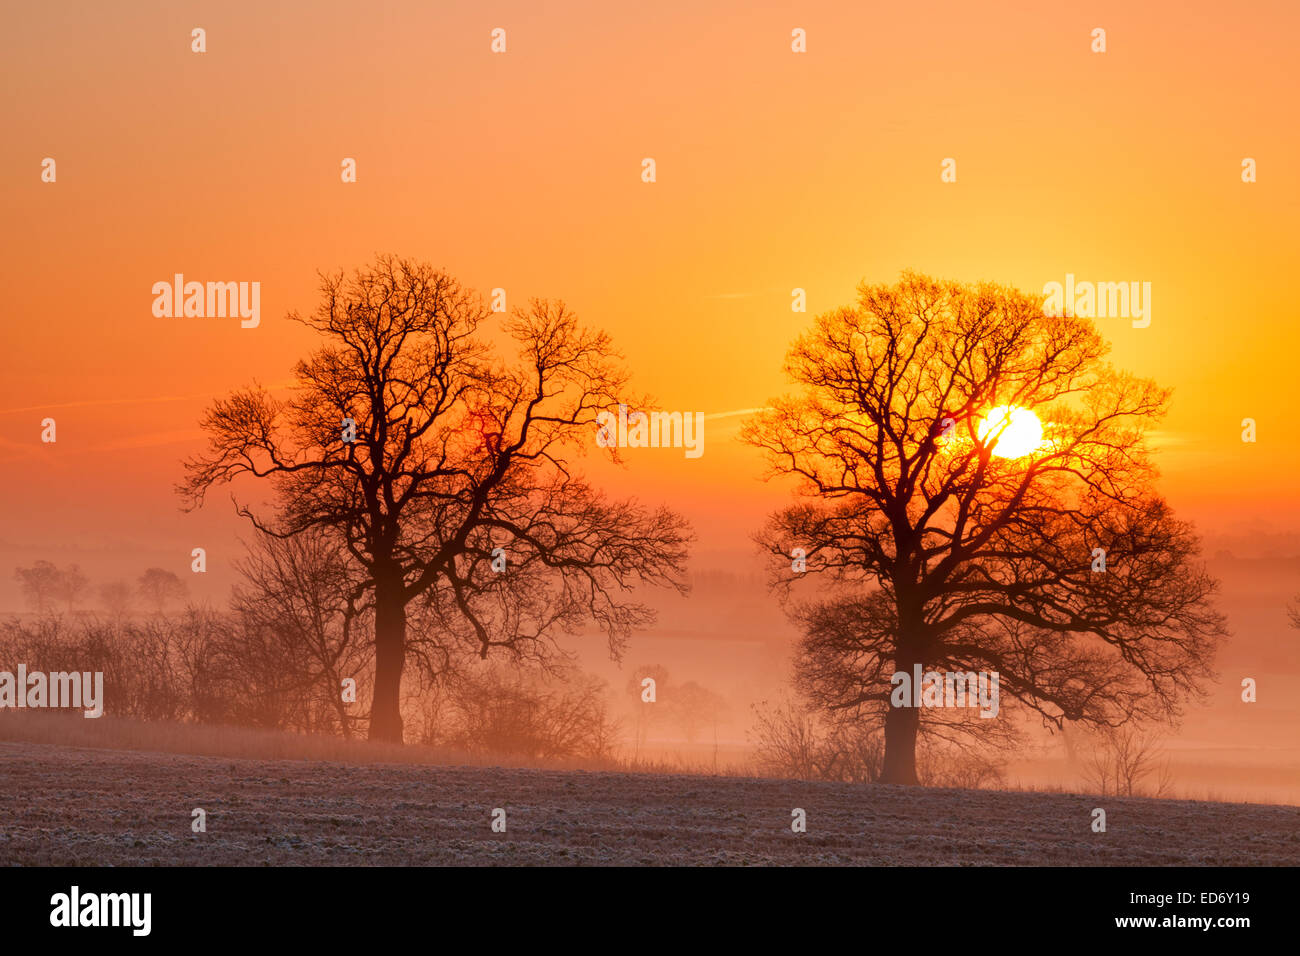 Northampton, UK. 30th Dec, 2014. A golden dawn breaks on a cold December morning over a frosted landscape, with Stock Photo